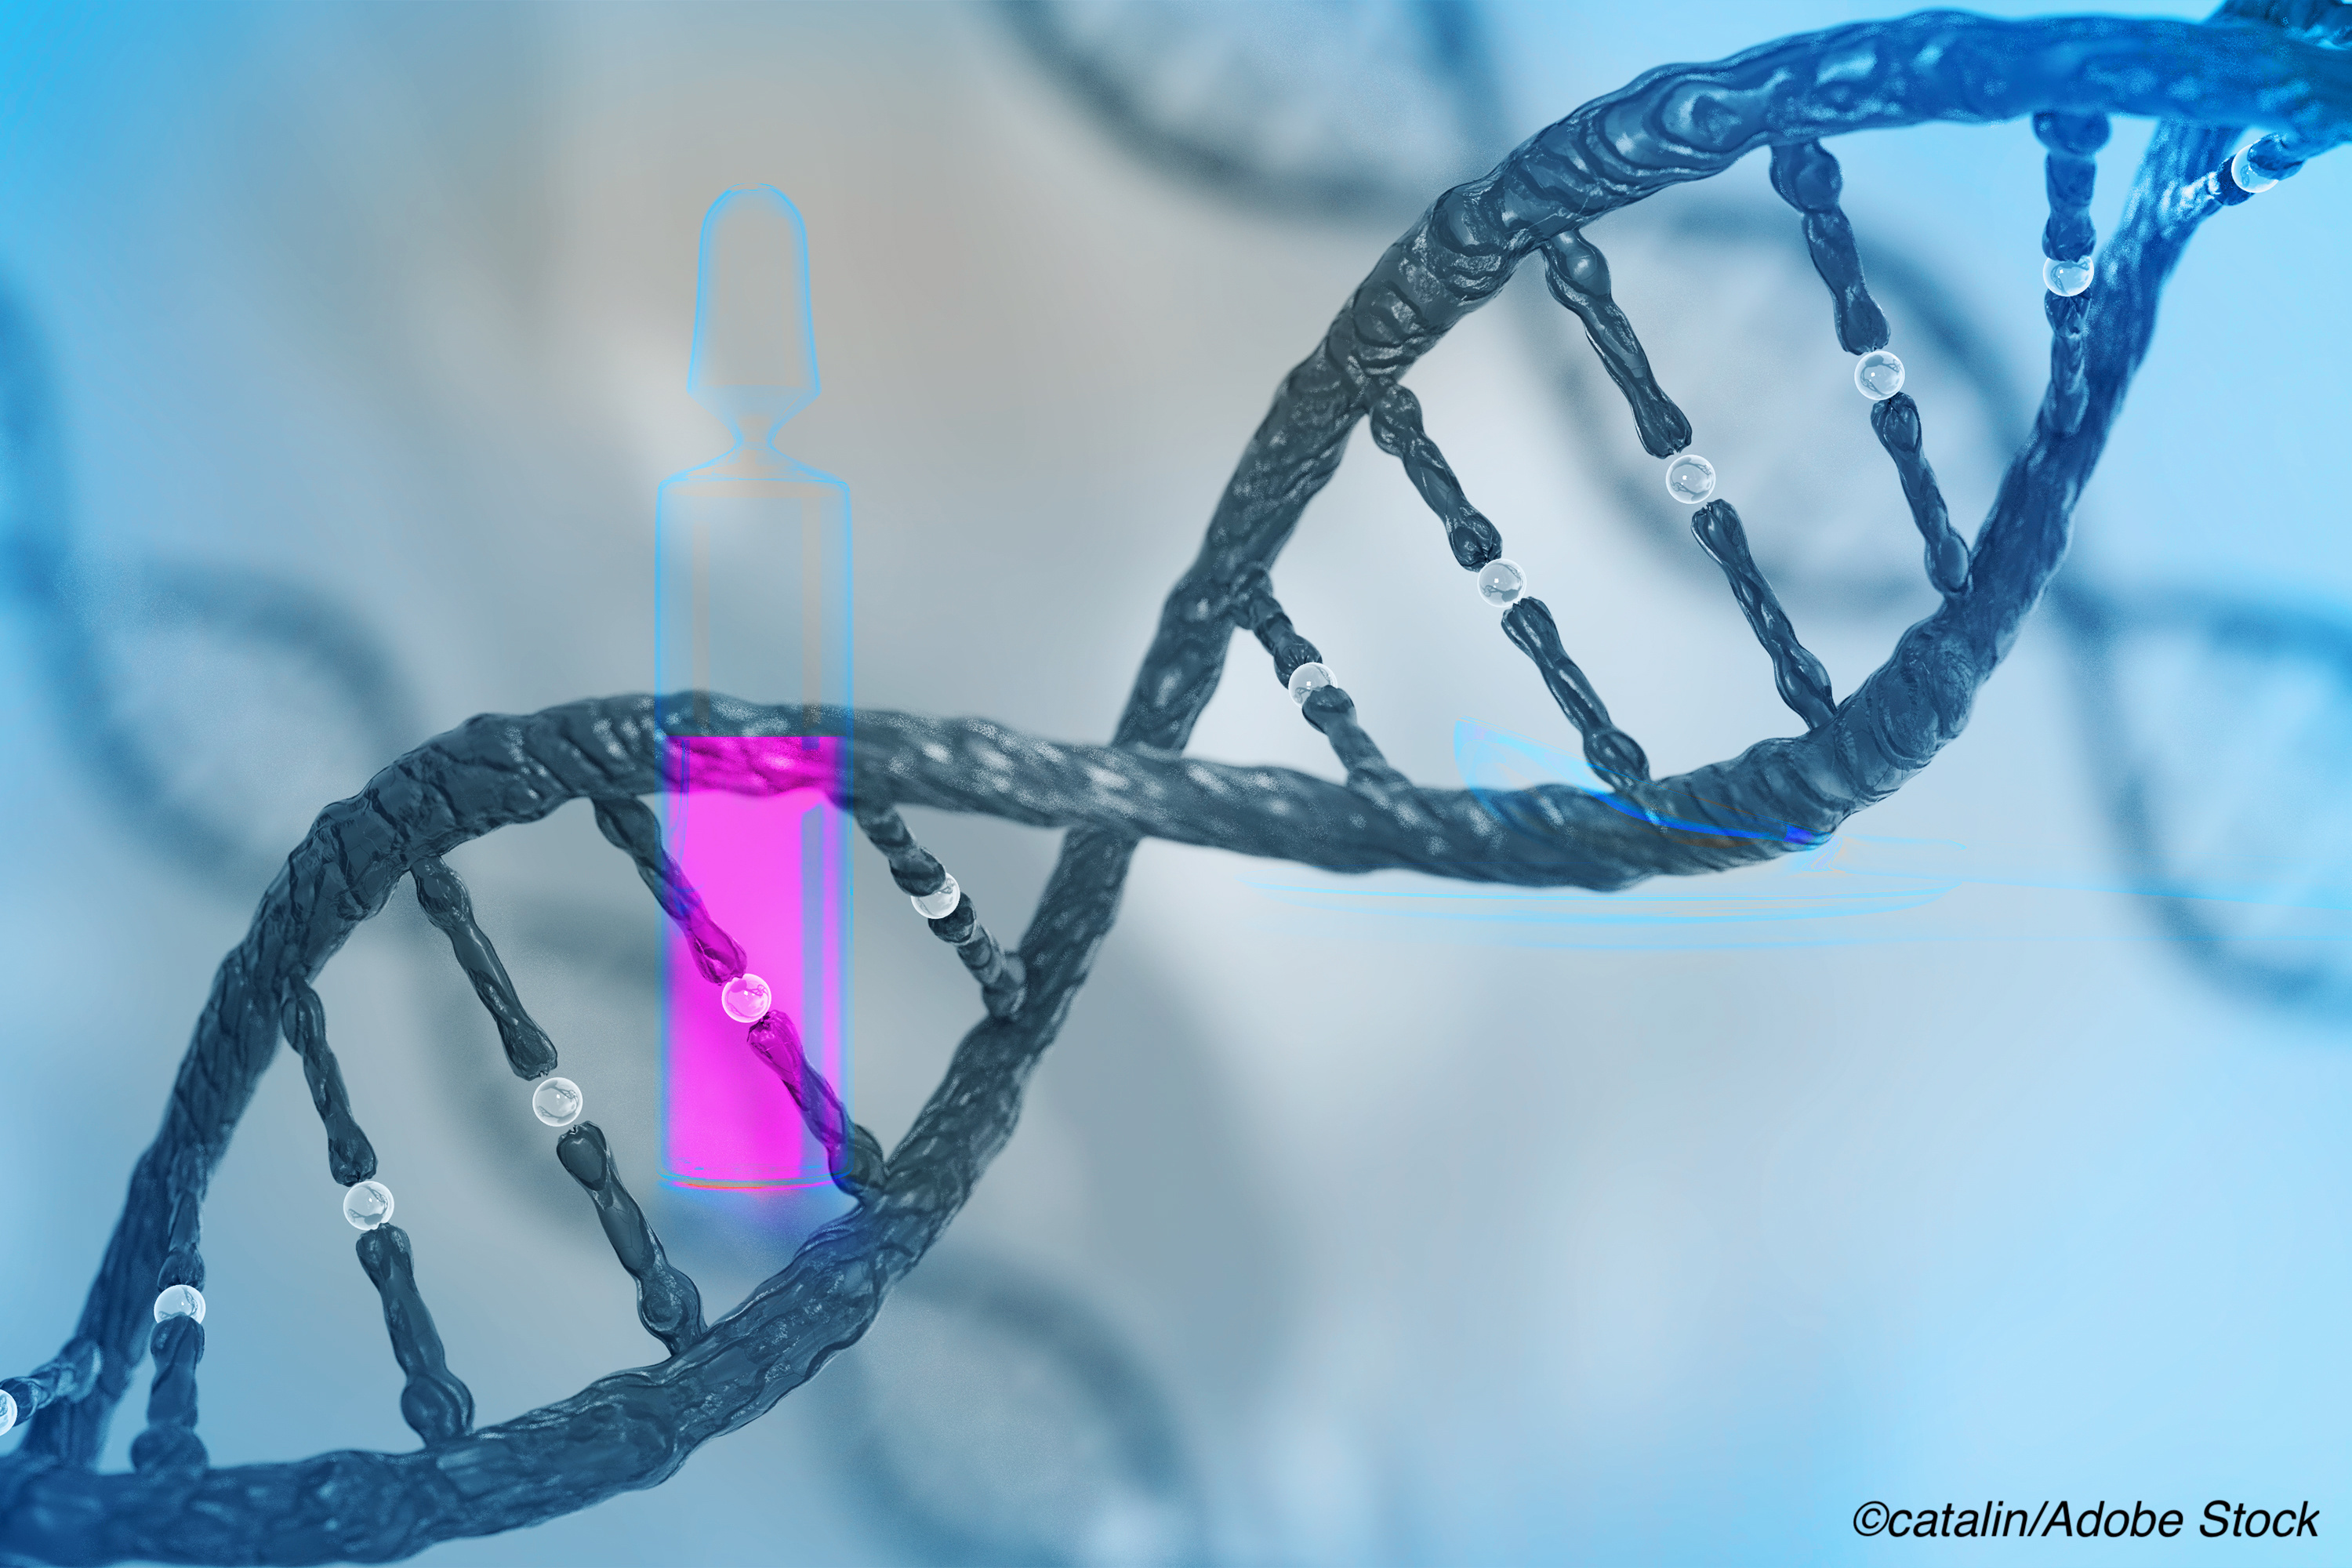 Use of Genomic Testing for Prostate Cancer Still Highly Variable Across the U.S.